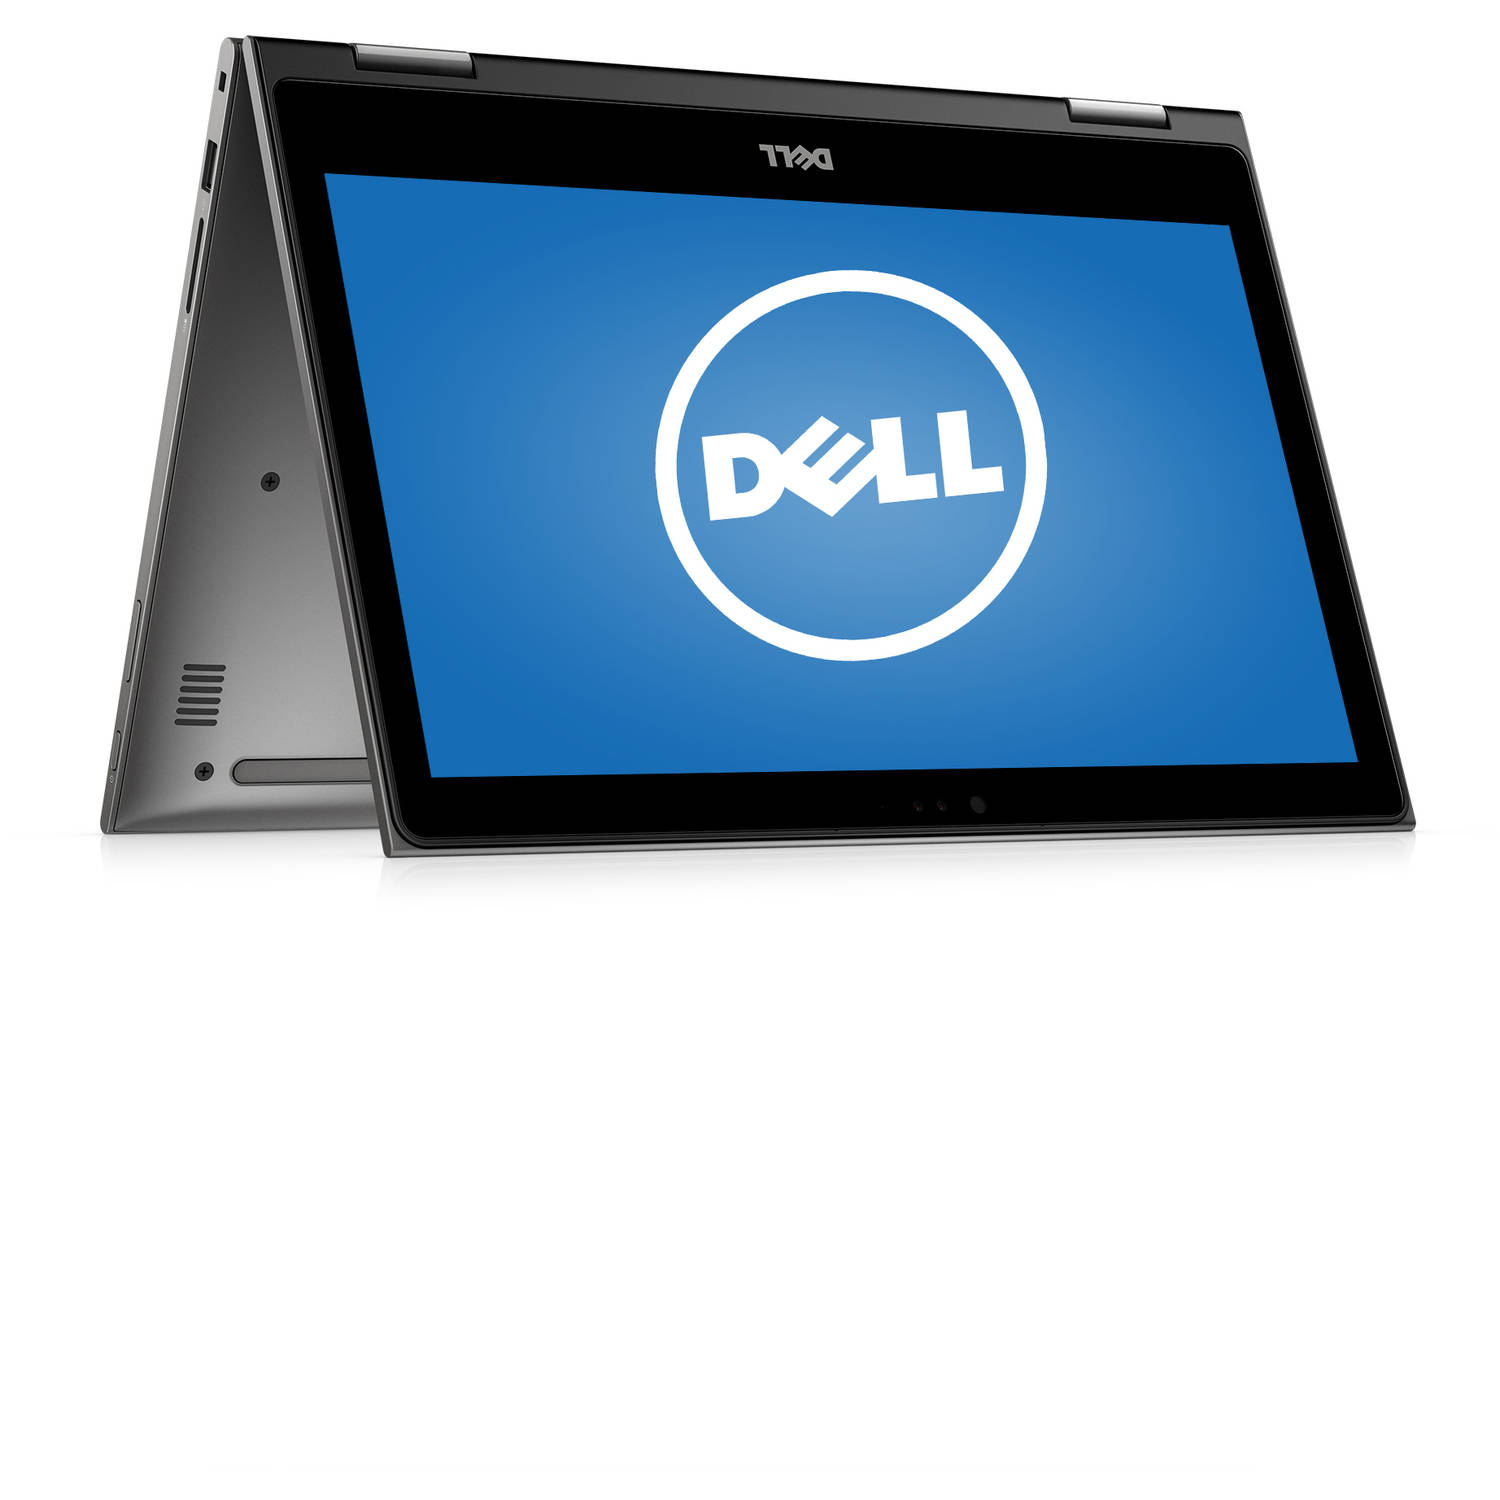 "Dell i5368-0027GRY Inspiron 13 5000 13.3"" Laptop, touch screen, 2-in-1, Windows 10 Home, Intel Pentium 4405U Processor, 4GB RAM, 500GB Hard Drive"